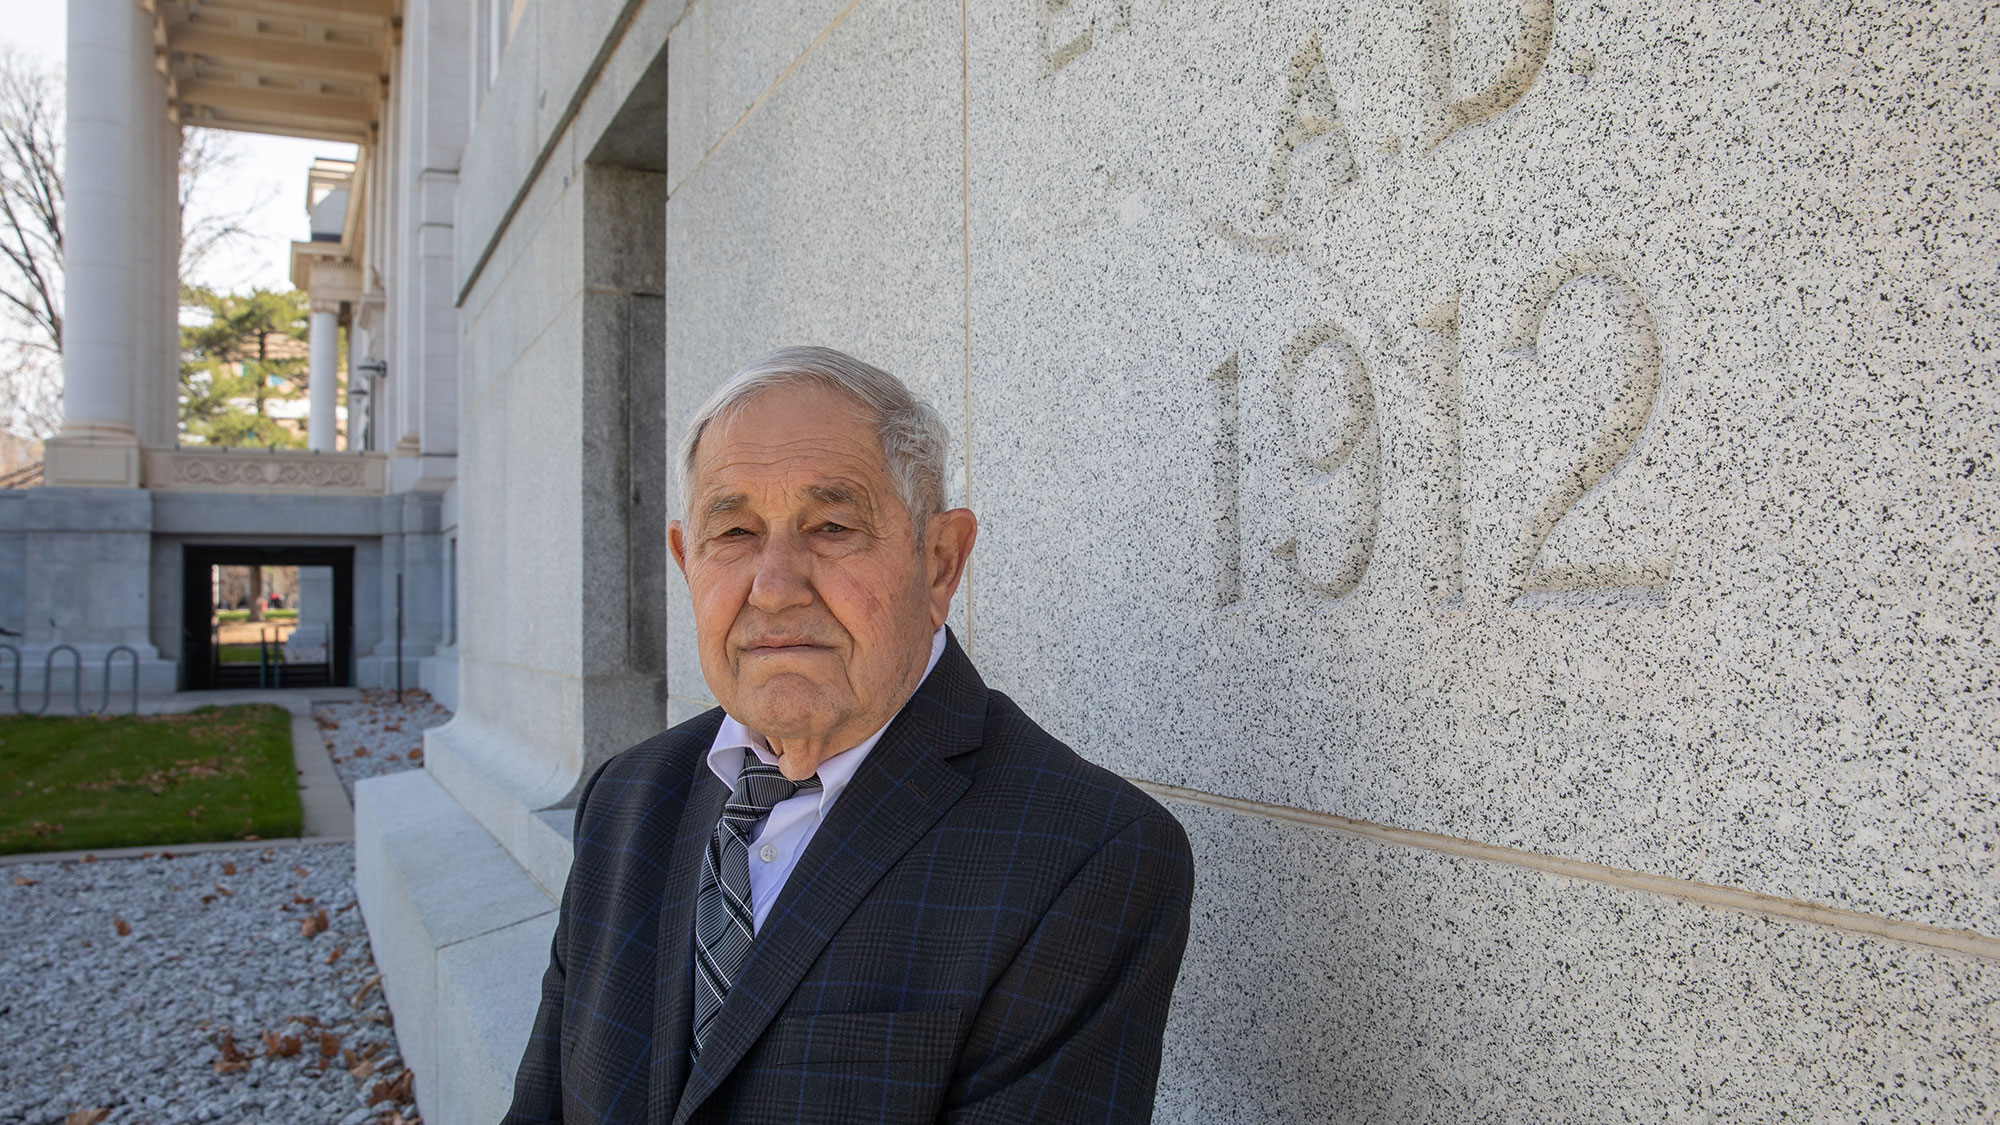 Photo of Demetrius Kourtides, a man in his 80s, leaning against a wall with partially shown 1912 carved into the outside of the building. He's wearing a black suit jacket with a blue tartan tie.